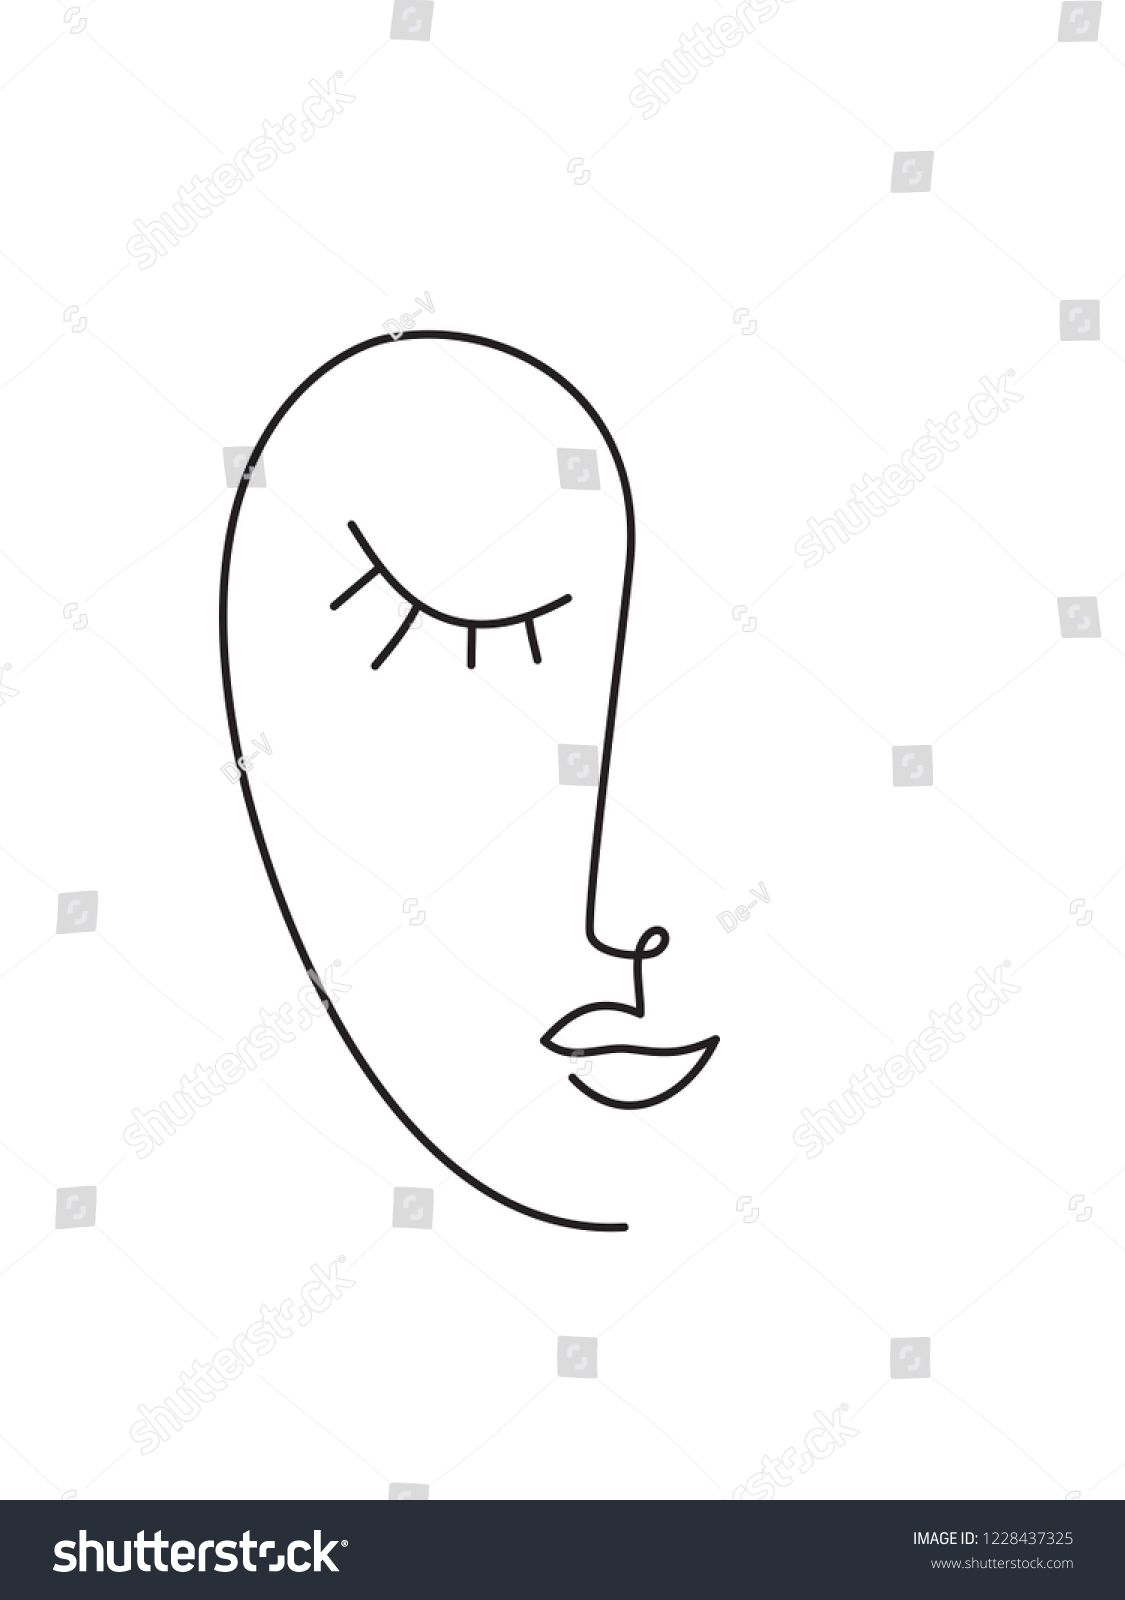 Abstract Minimal Faces Continuous Line Drawing Ad Spon